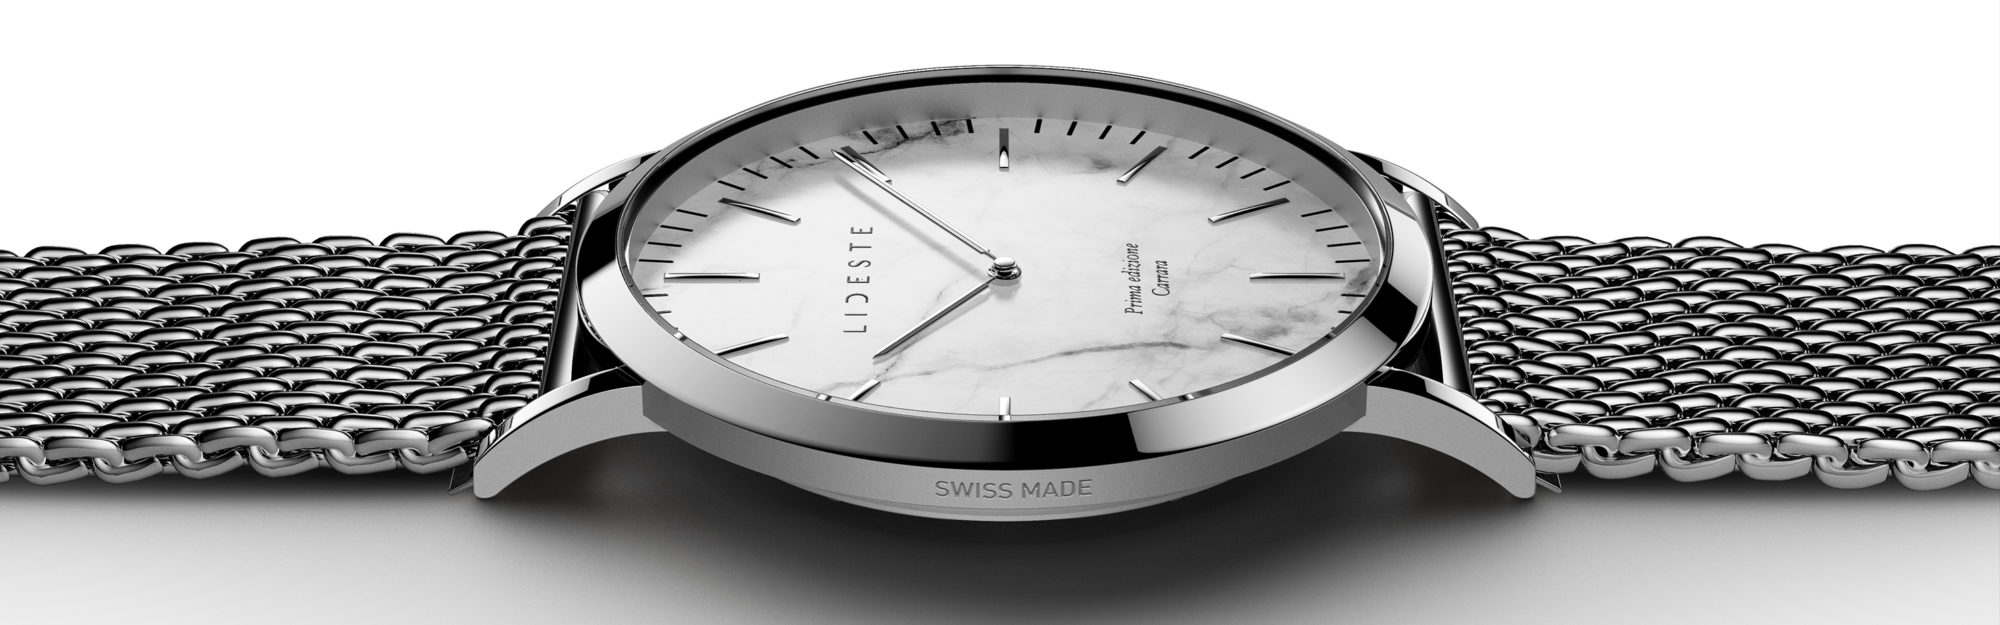 silver mesh watch for men and women